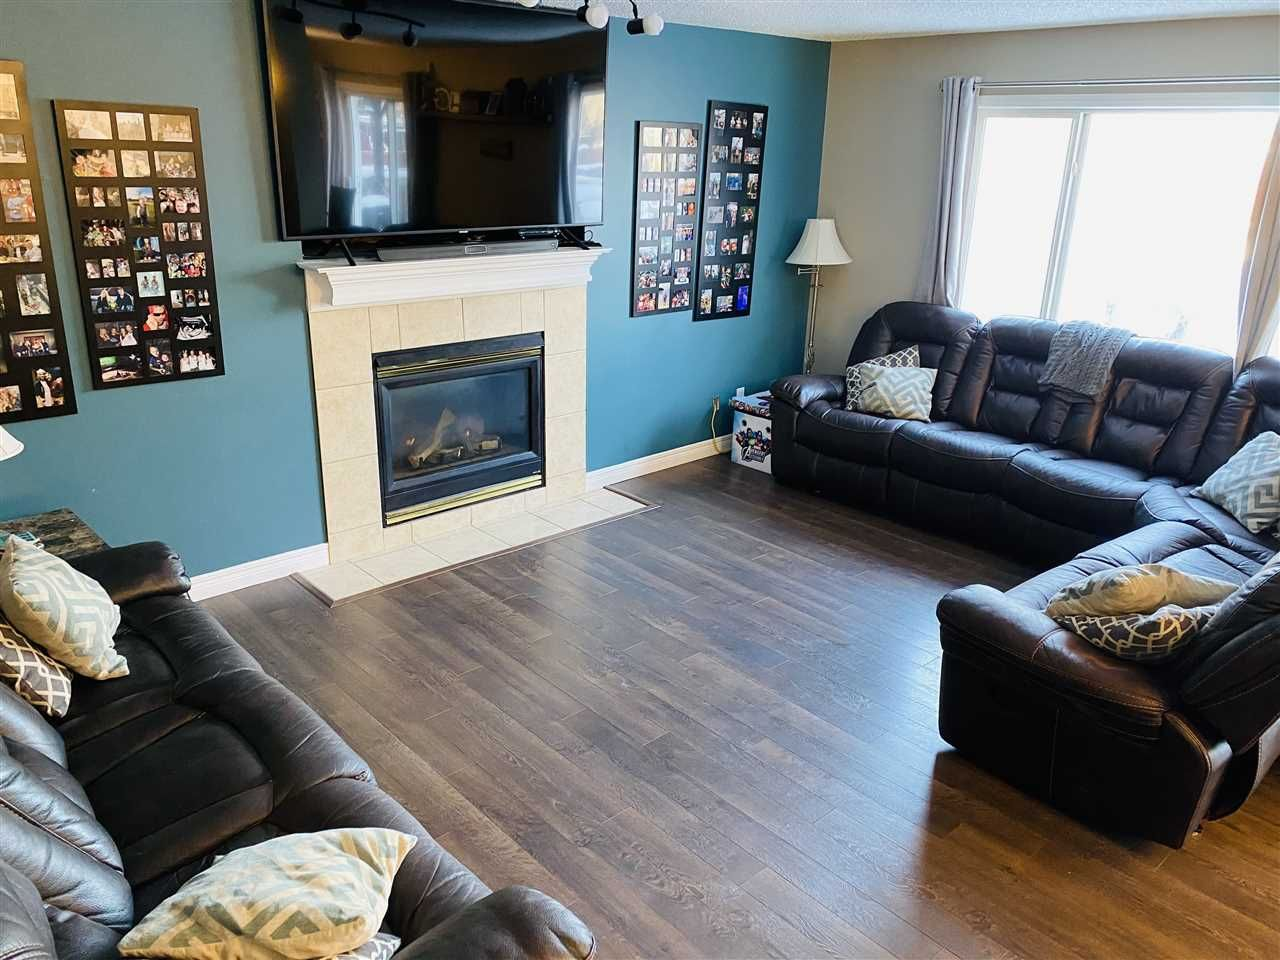 Main Photo: 22 DOUCETTE Place NW: St. Albert House for sale : MLS®# E4241911